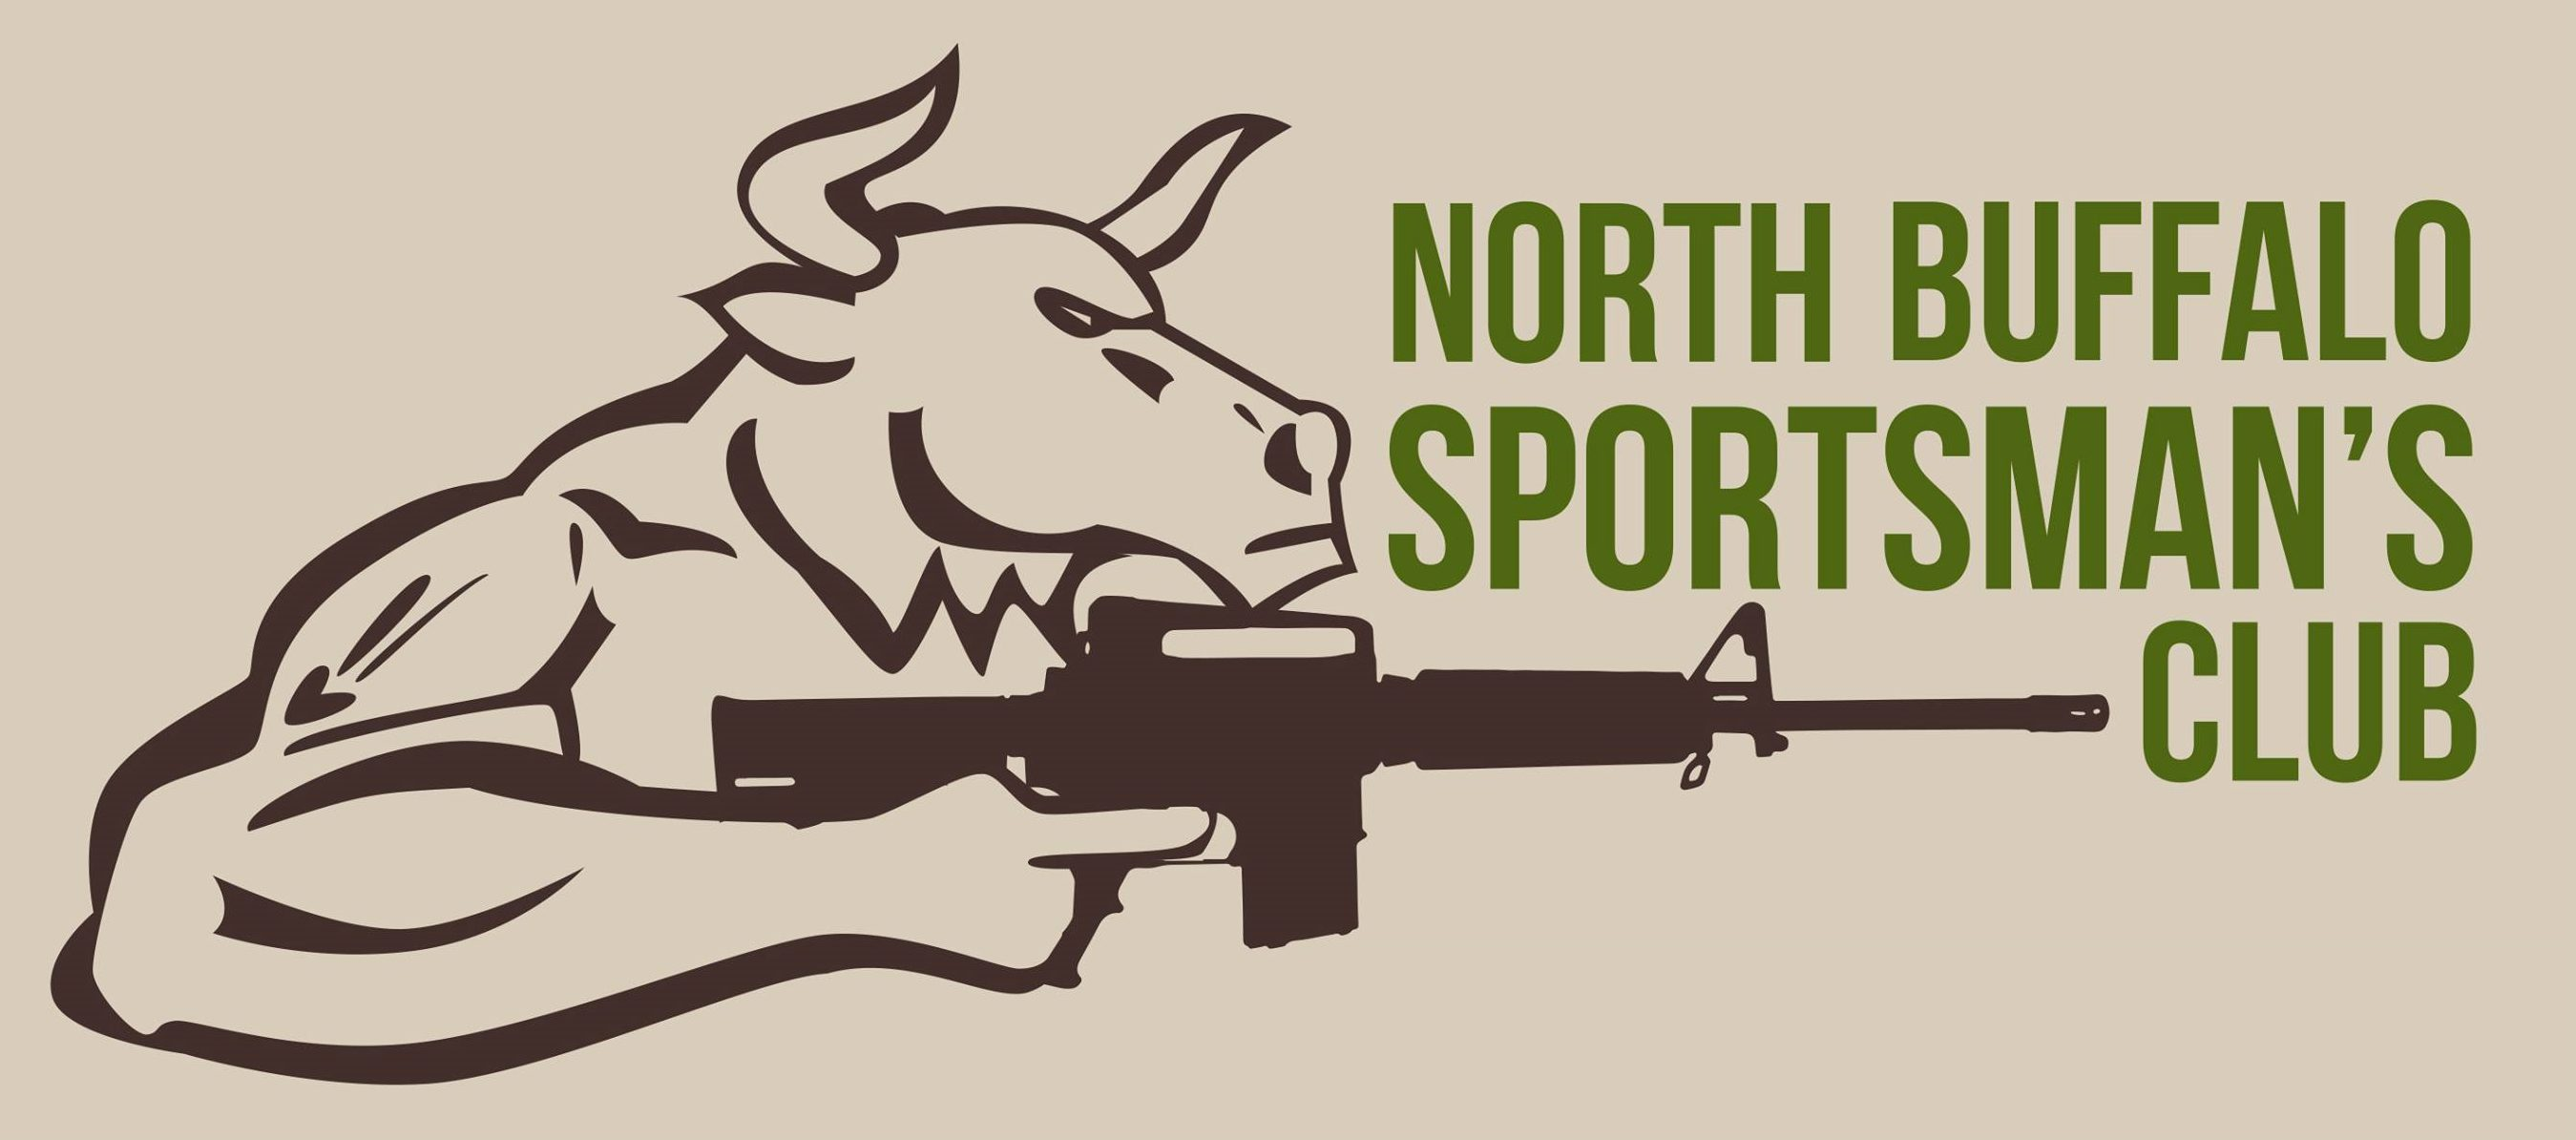 North Buffalo Sportsman's Club